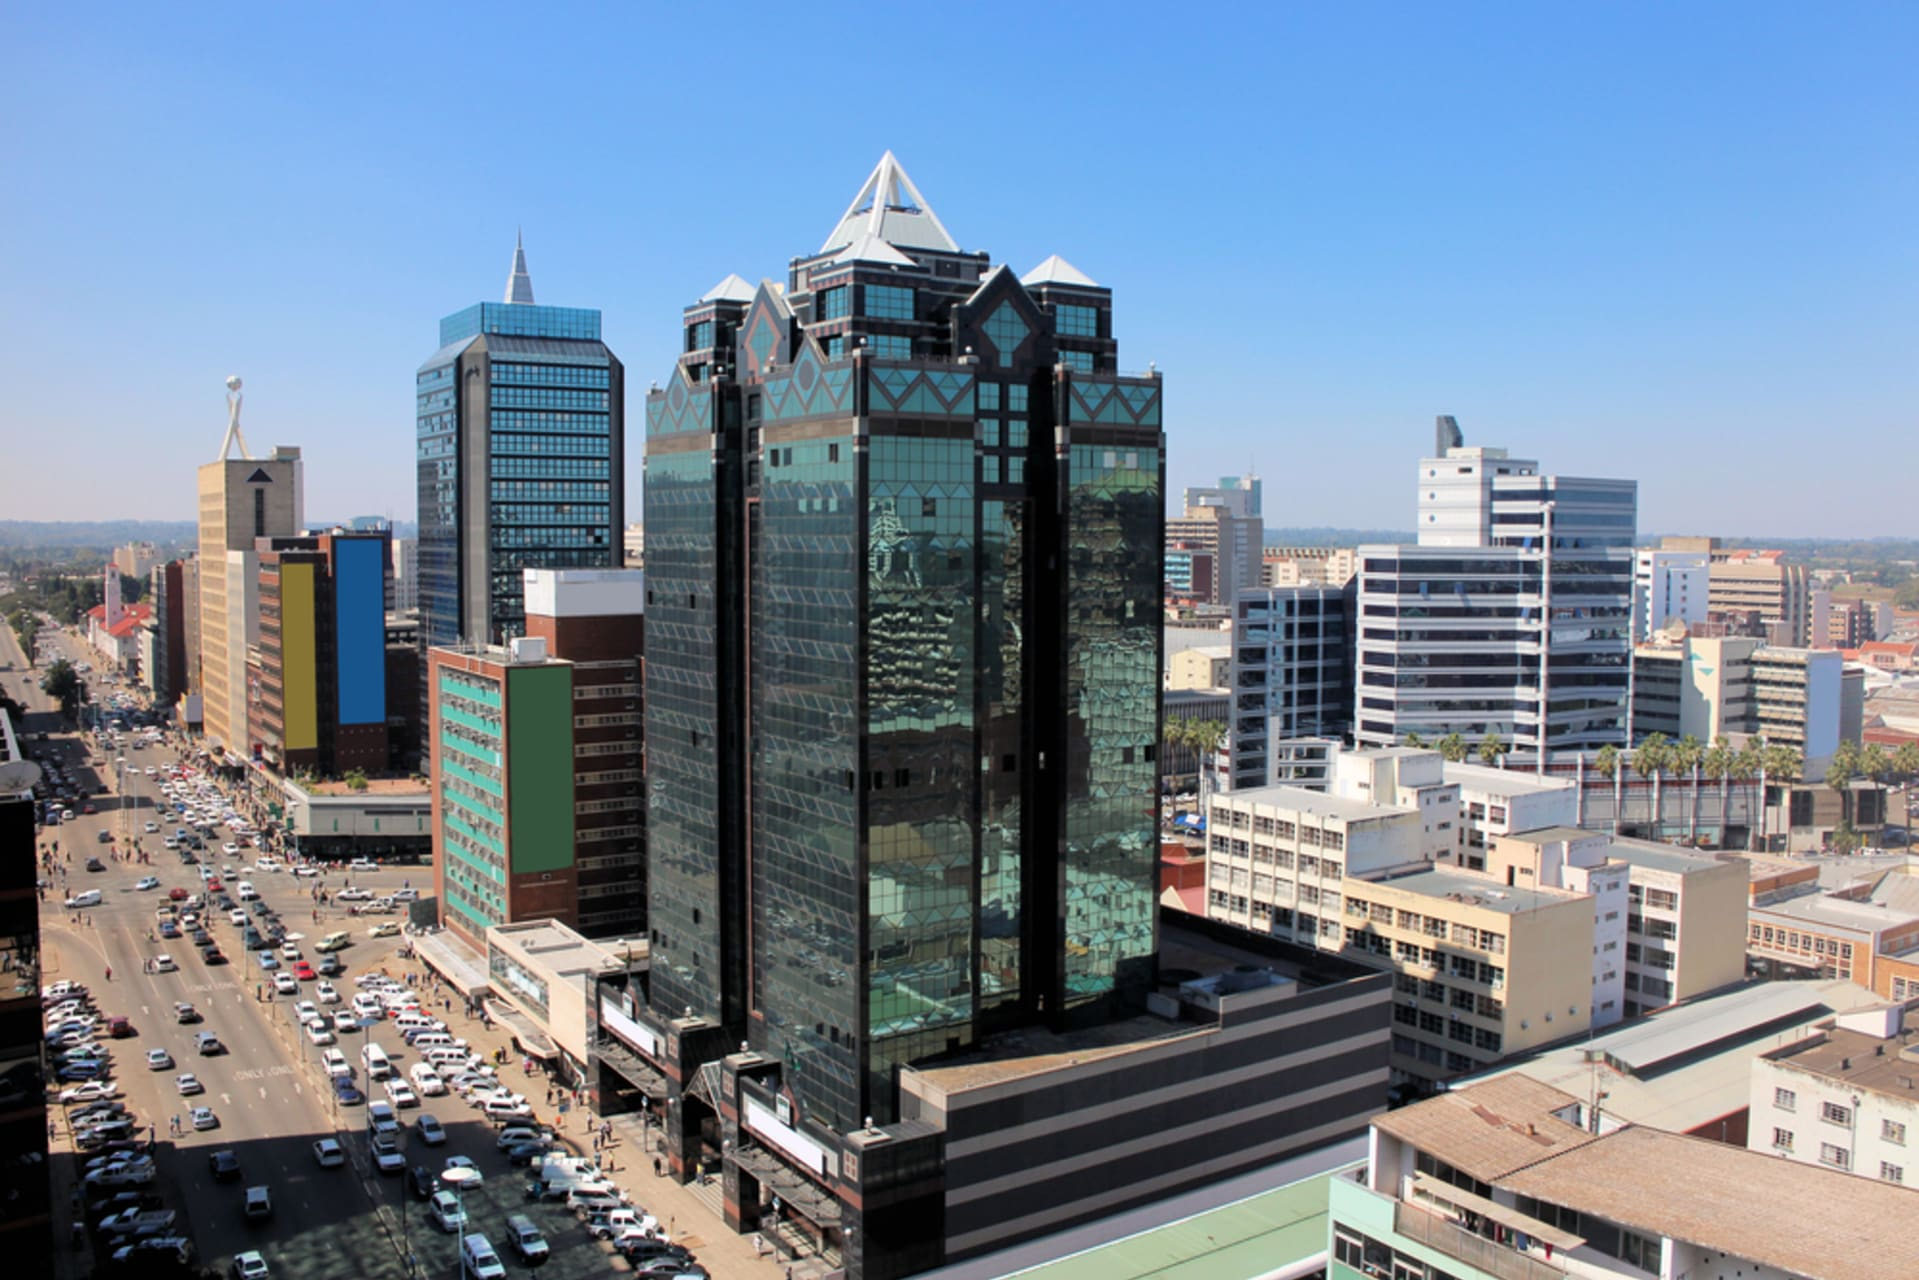 Harare - Harare:  The Heart of the City